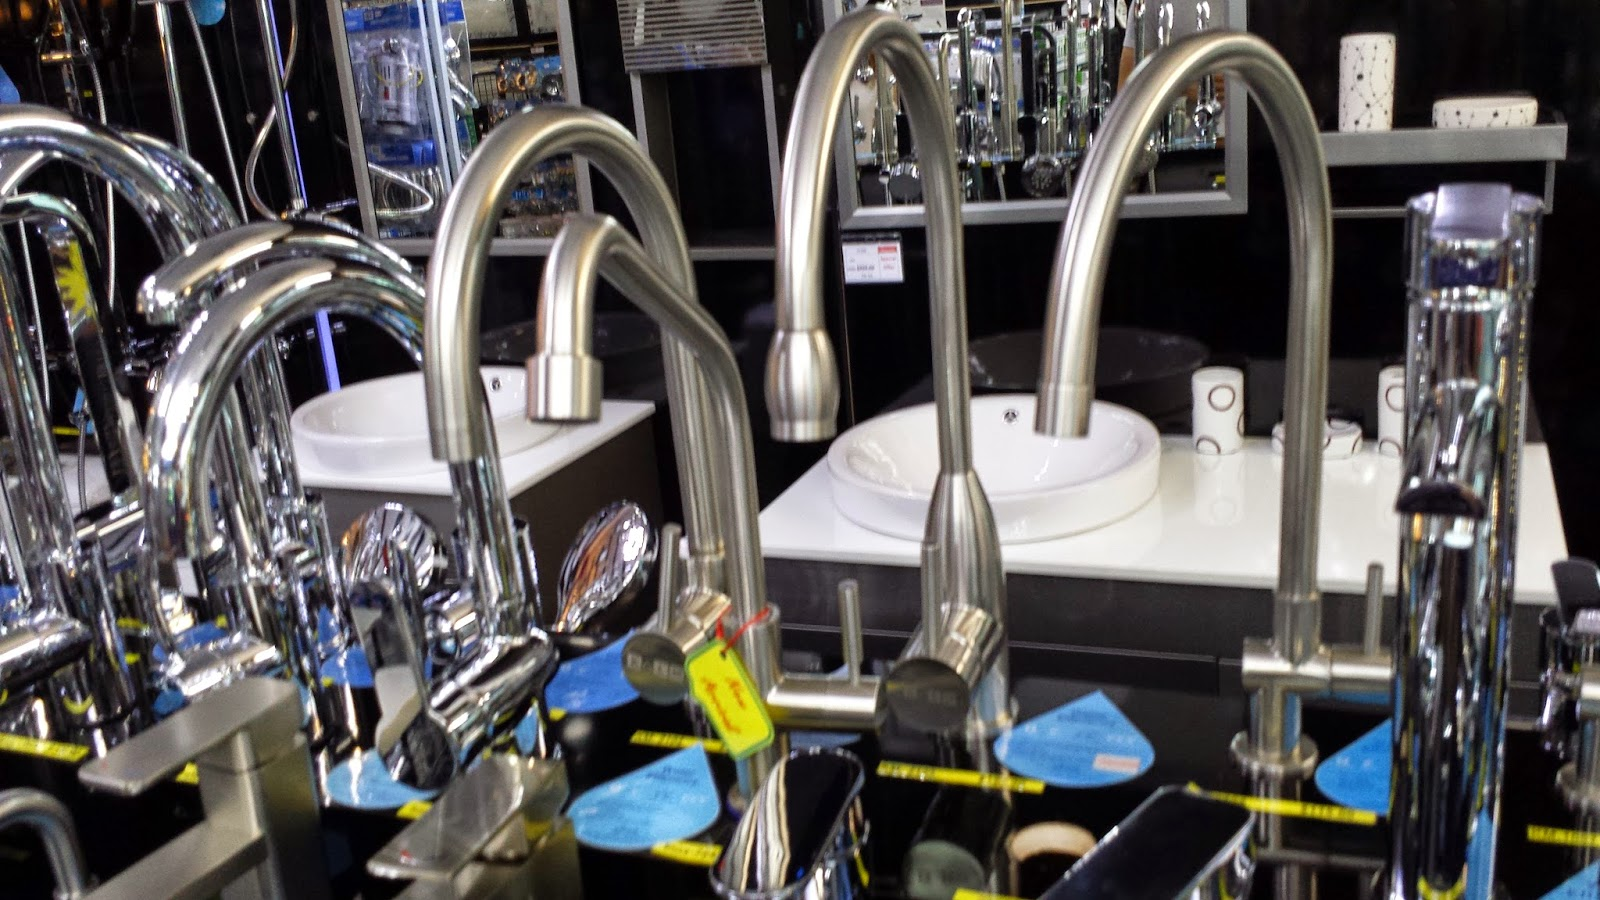 Bathroom Accessories Jalan Besar alal together as one!: kitchen and bathroom sinks and bathroom